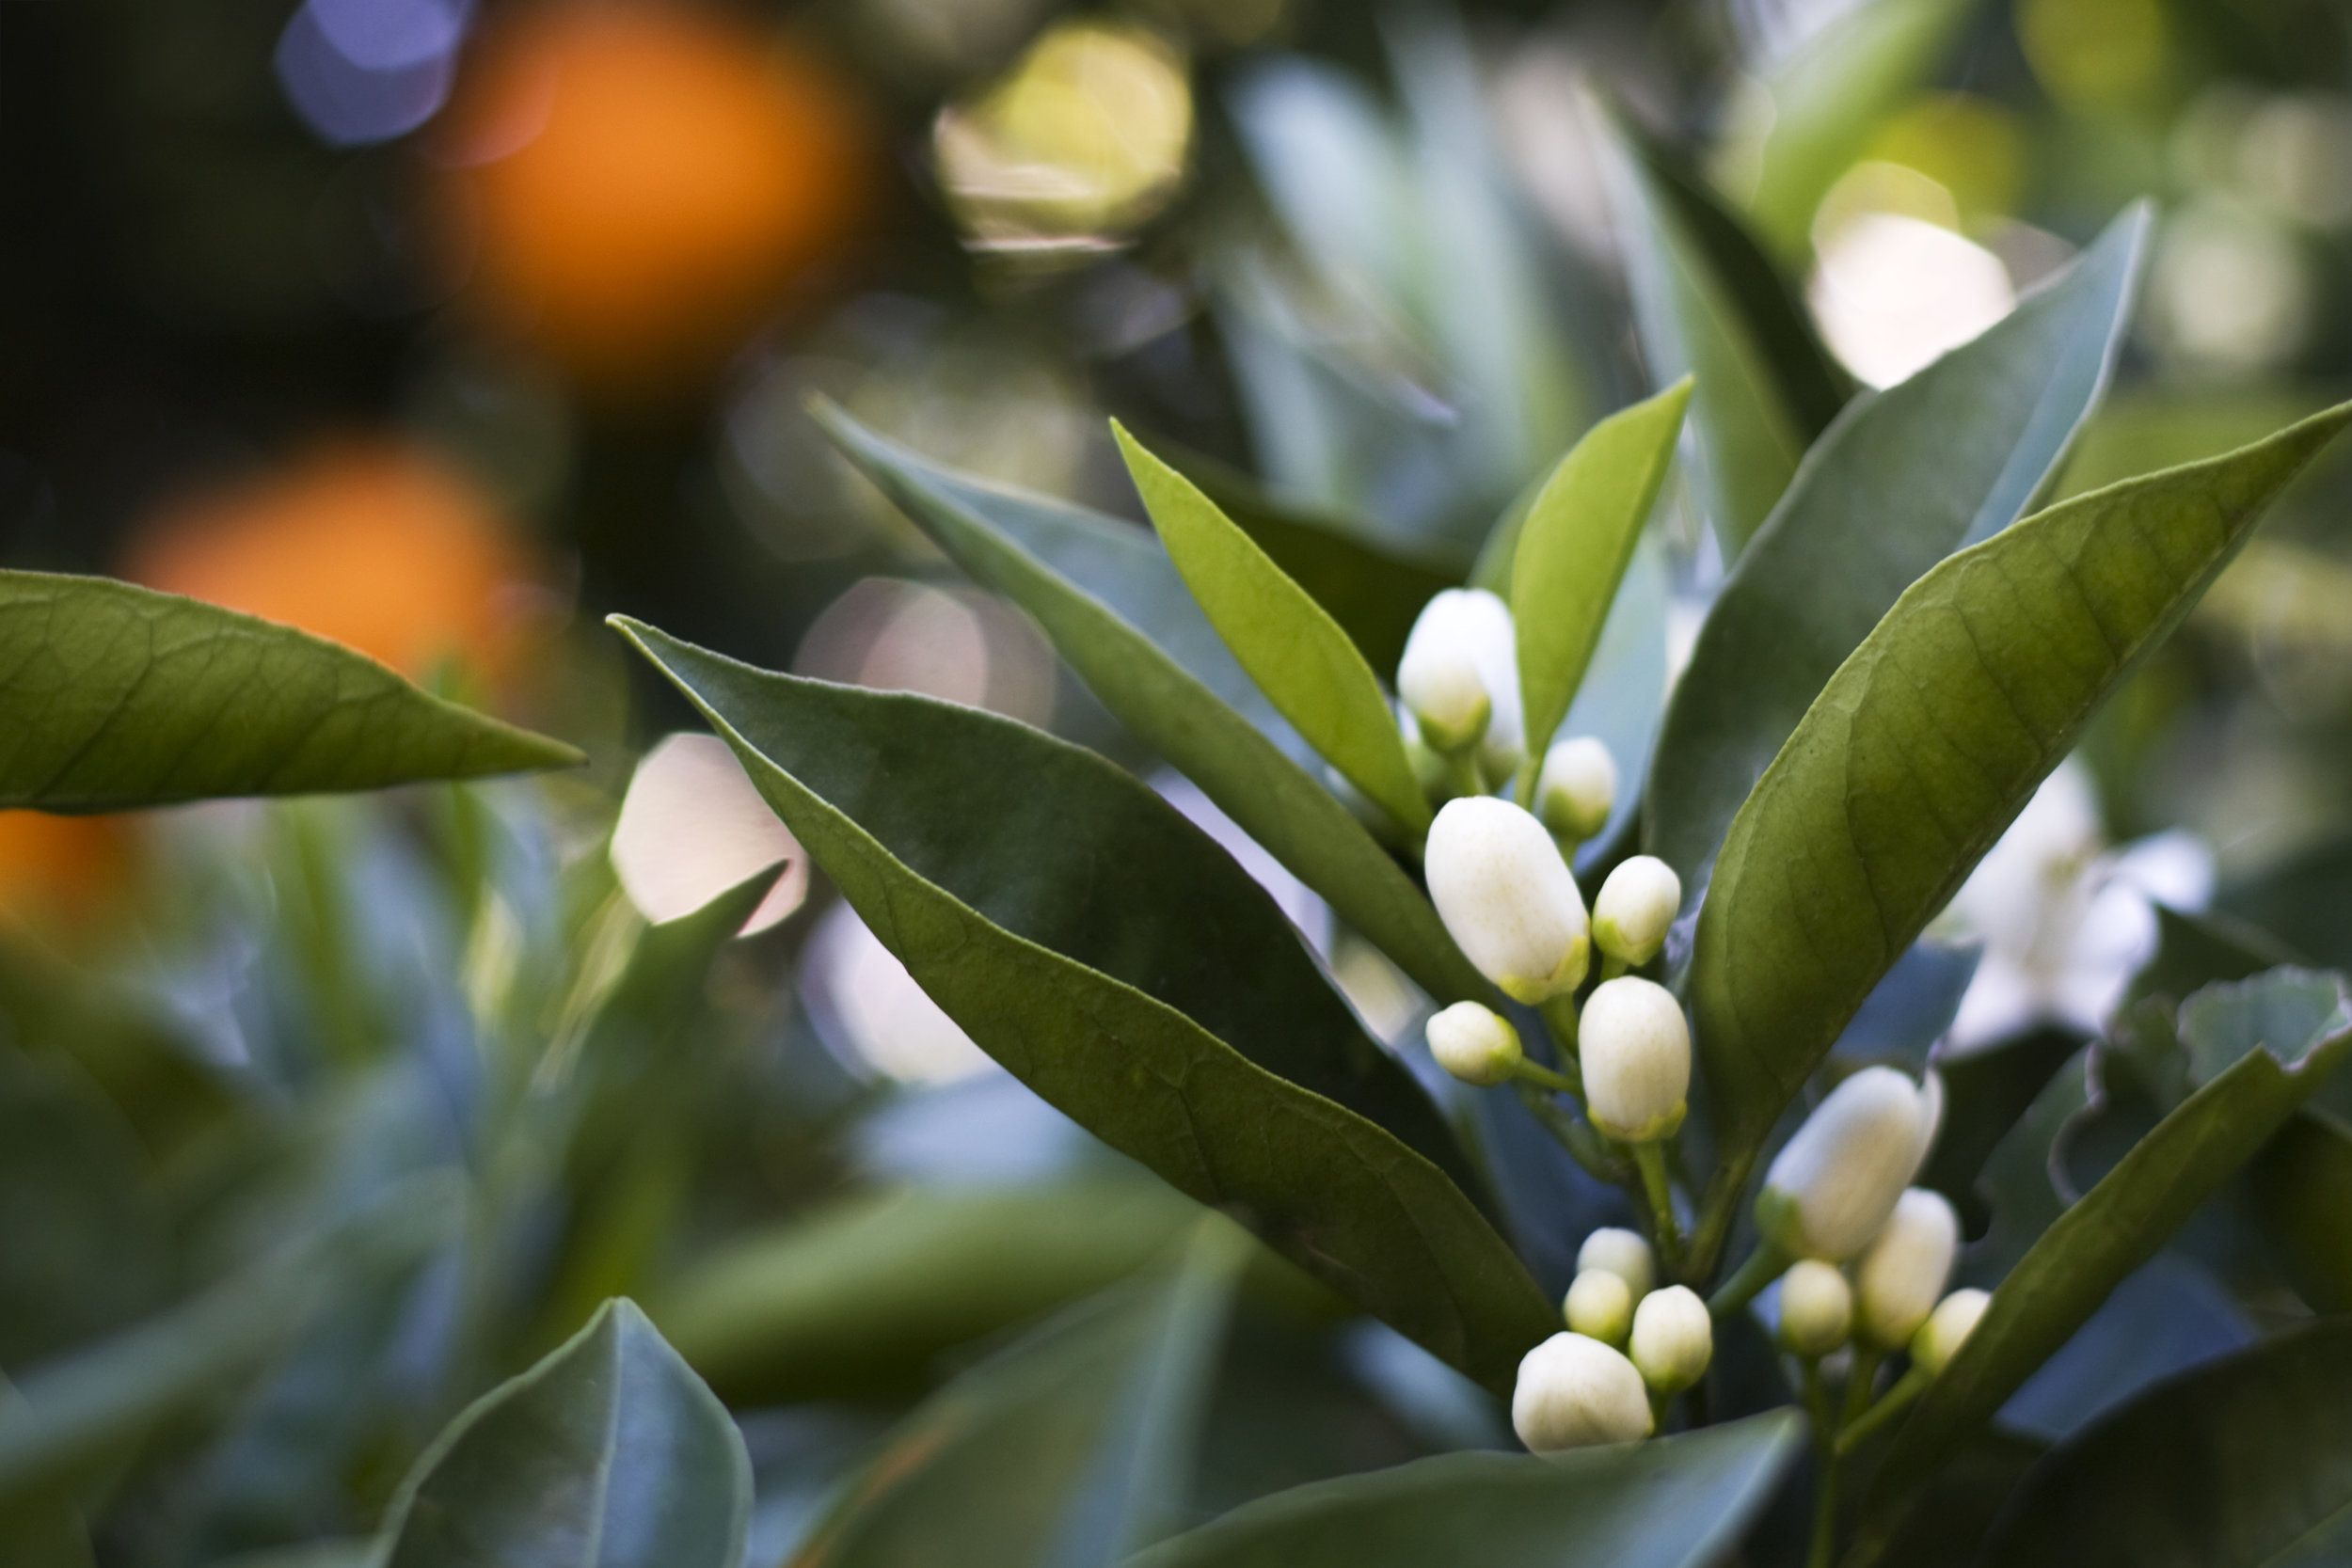 Orange blossoms are bursting with fragrance.